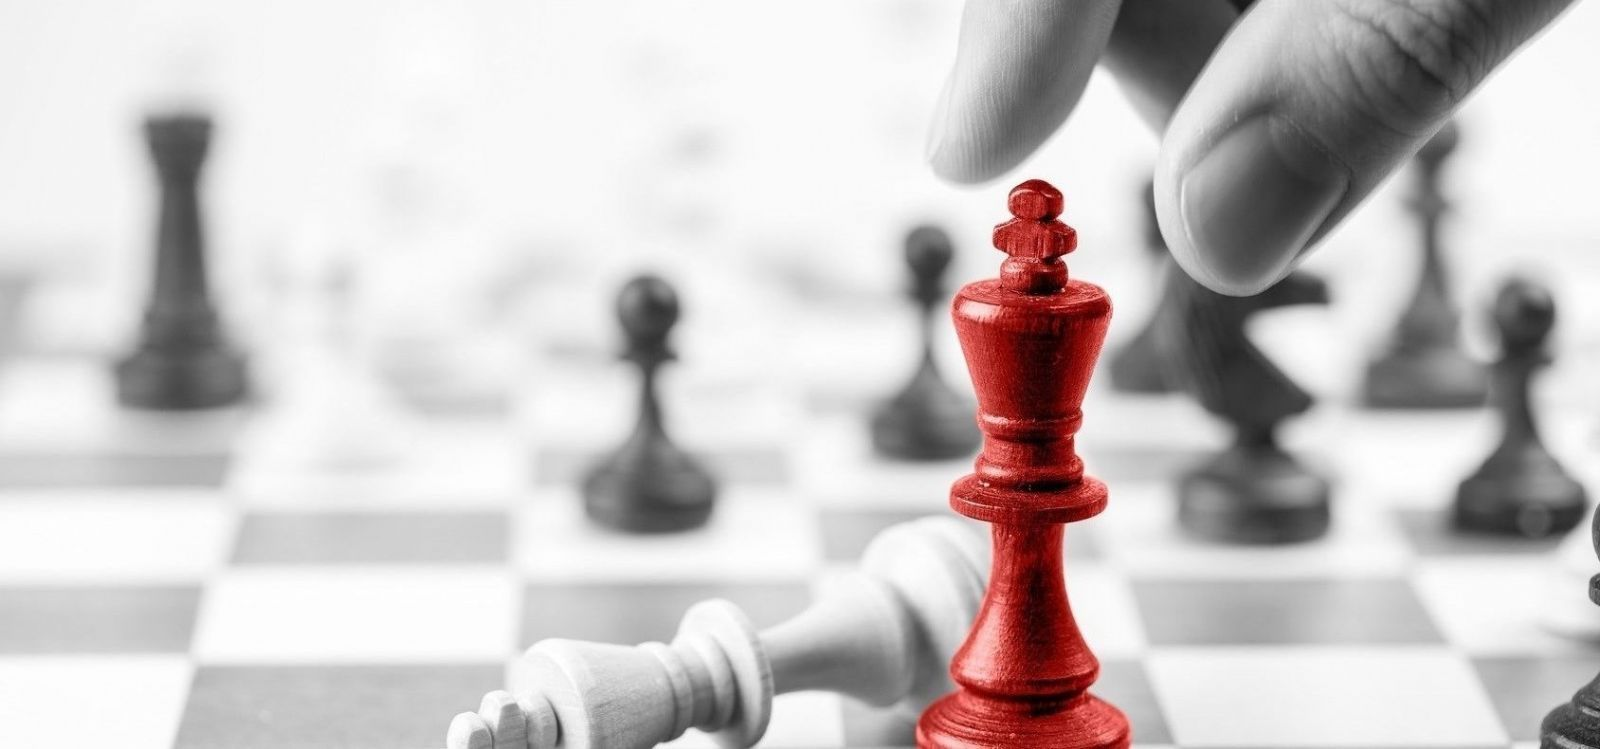 MAKE YOUR BEST MOVE TO WIN